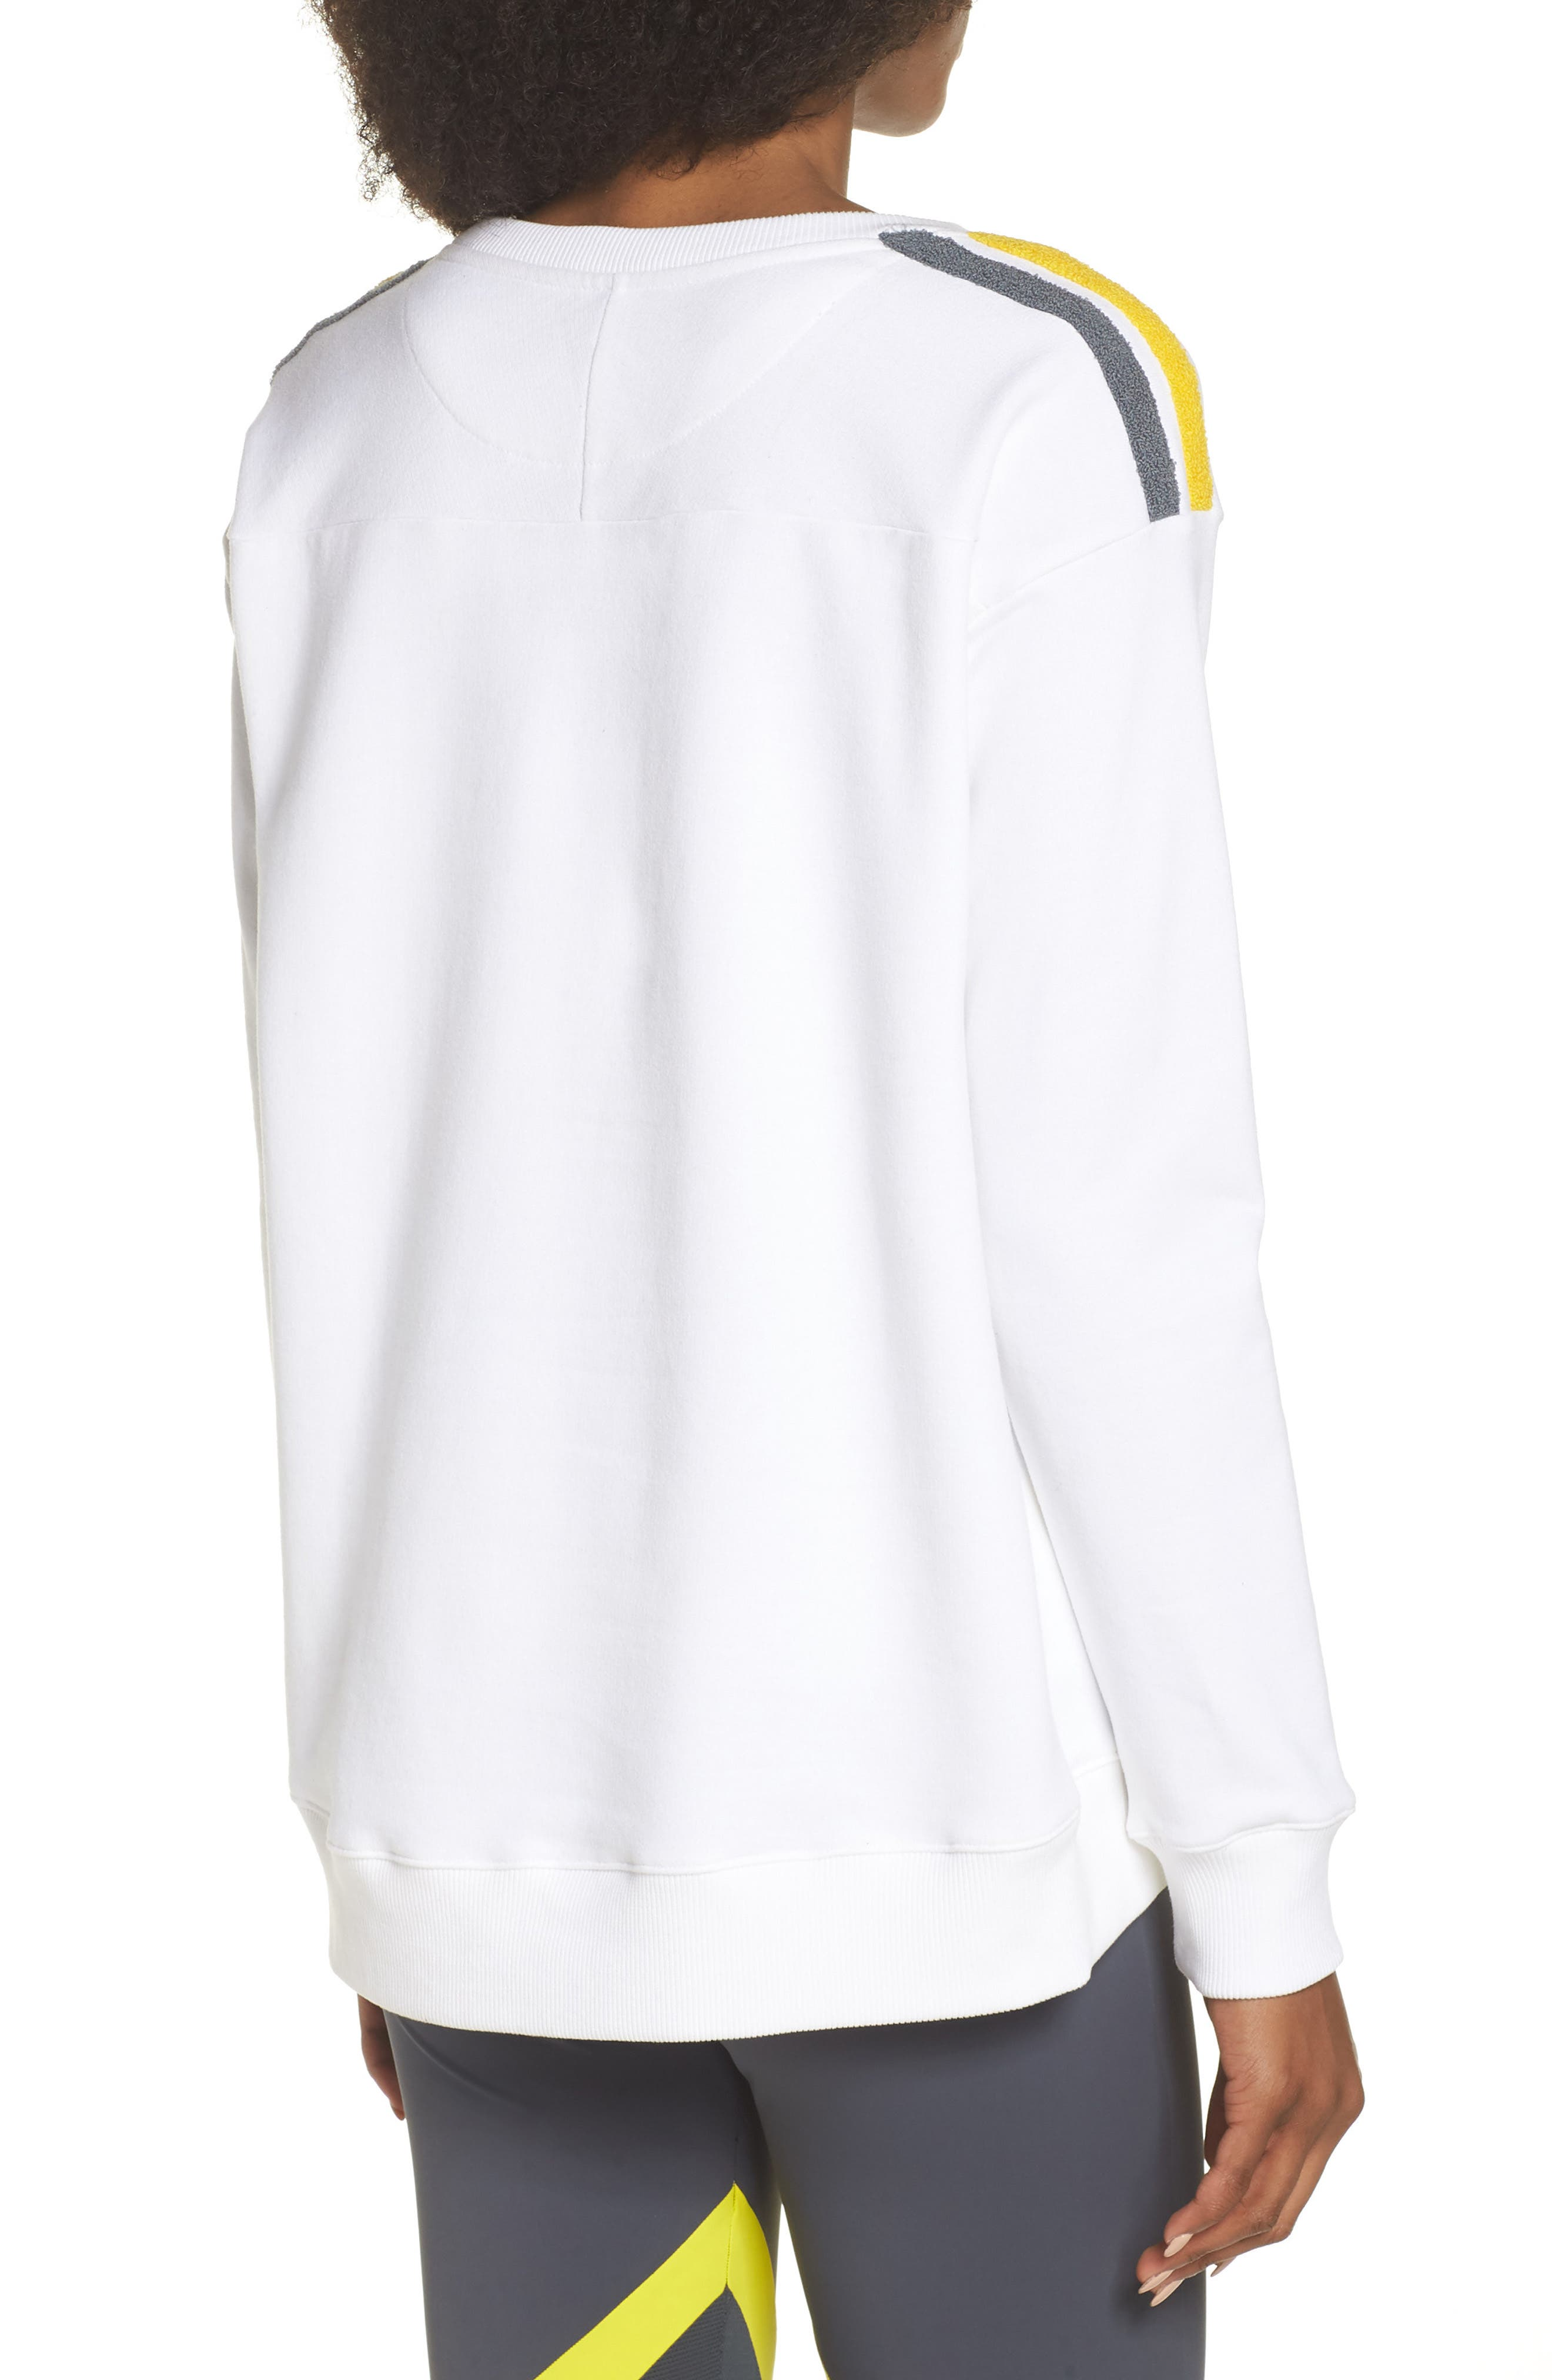 BoomBoom Athletica Tricolor Shoulder Sweatshirt,                             Alternate thumbnail 2, color,                             WHITE/ GREY/ YELLOW